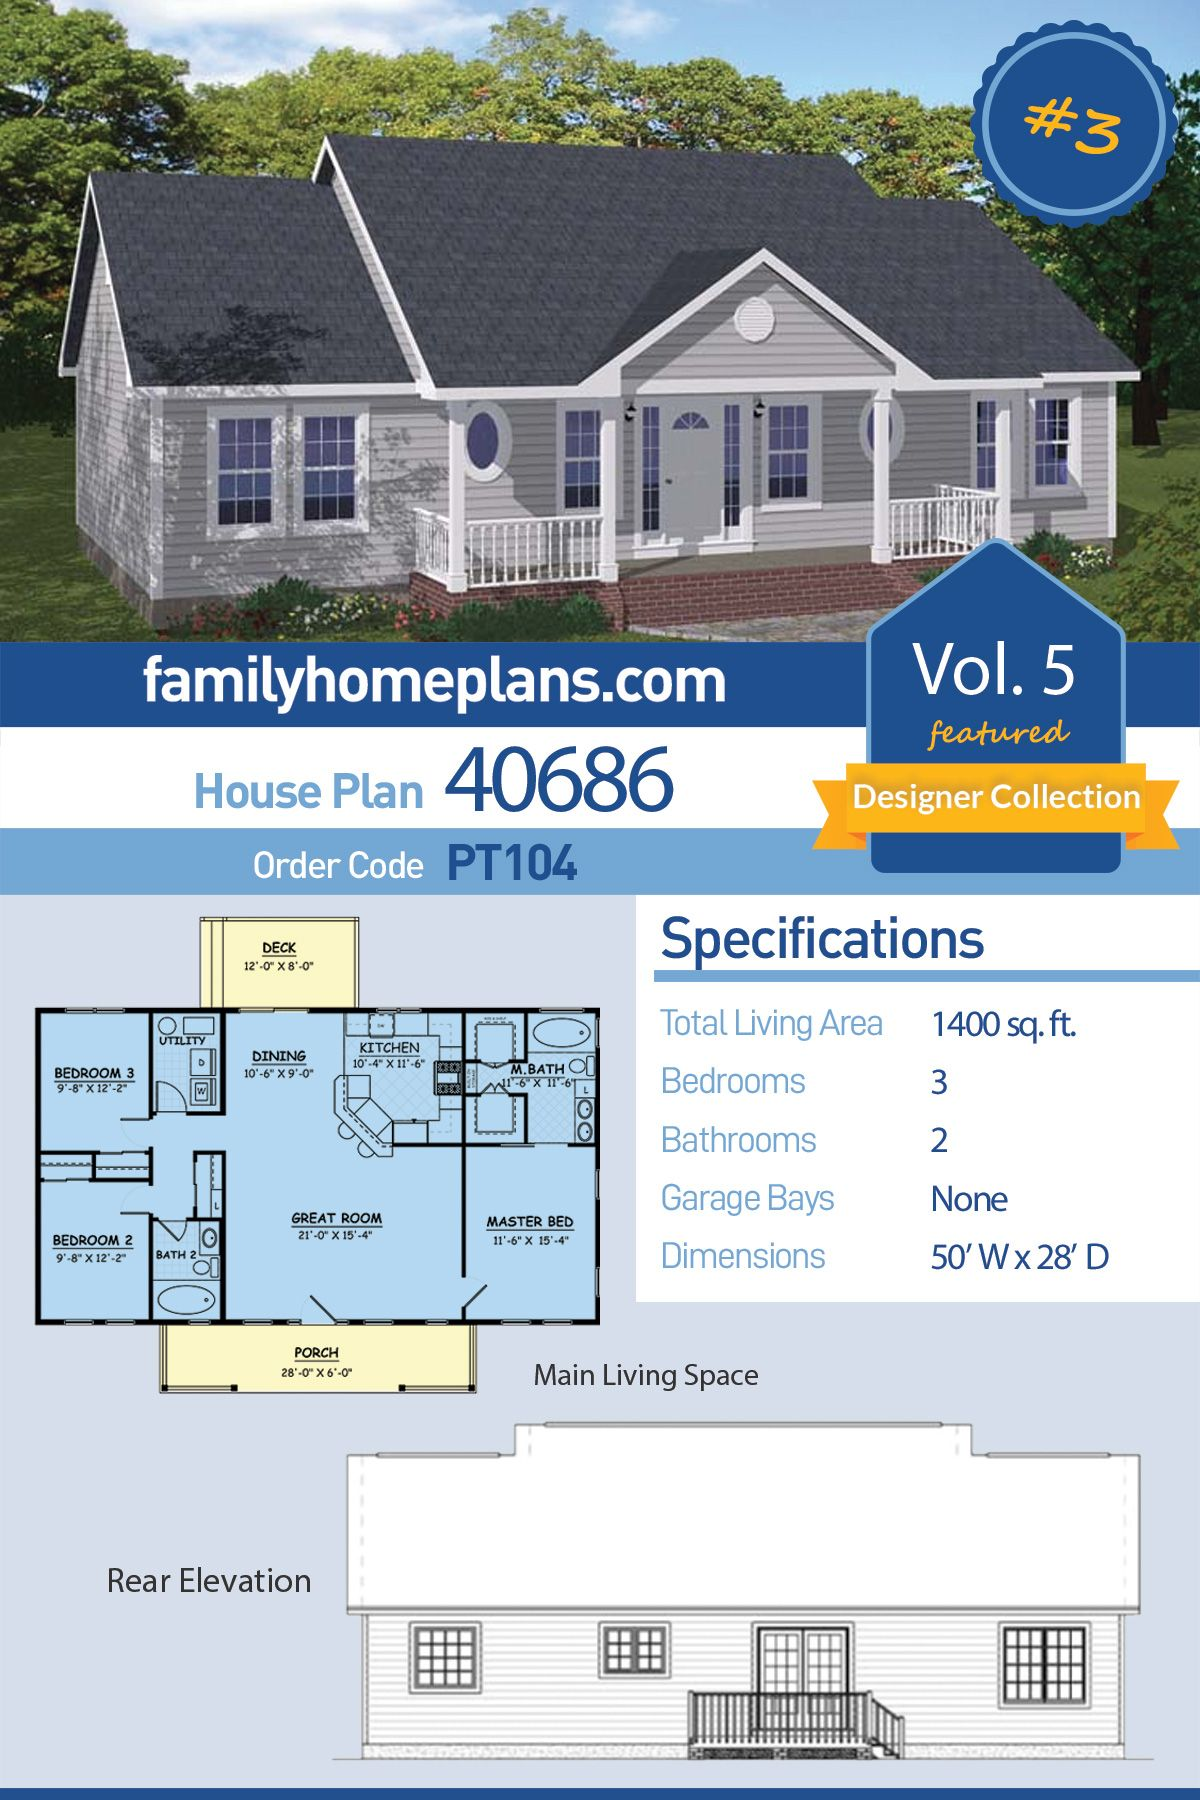 Ranch Style House Plan 40686 With 3 Bed 2 Bath Country Style House Plans Affordable House Plans Ranch Style House Plans